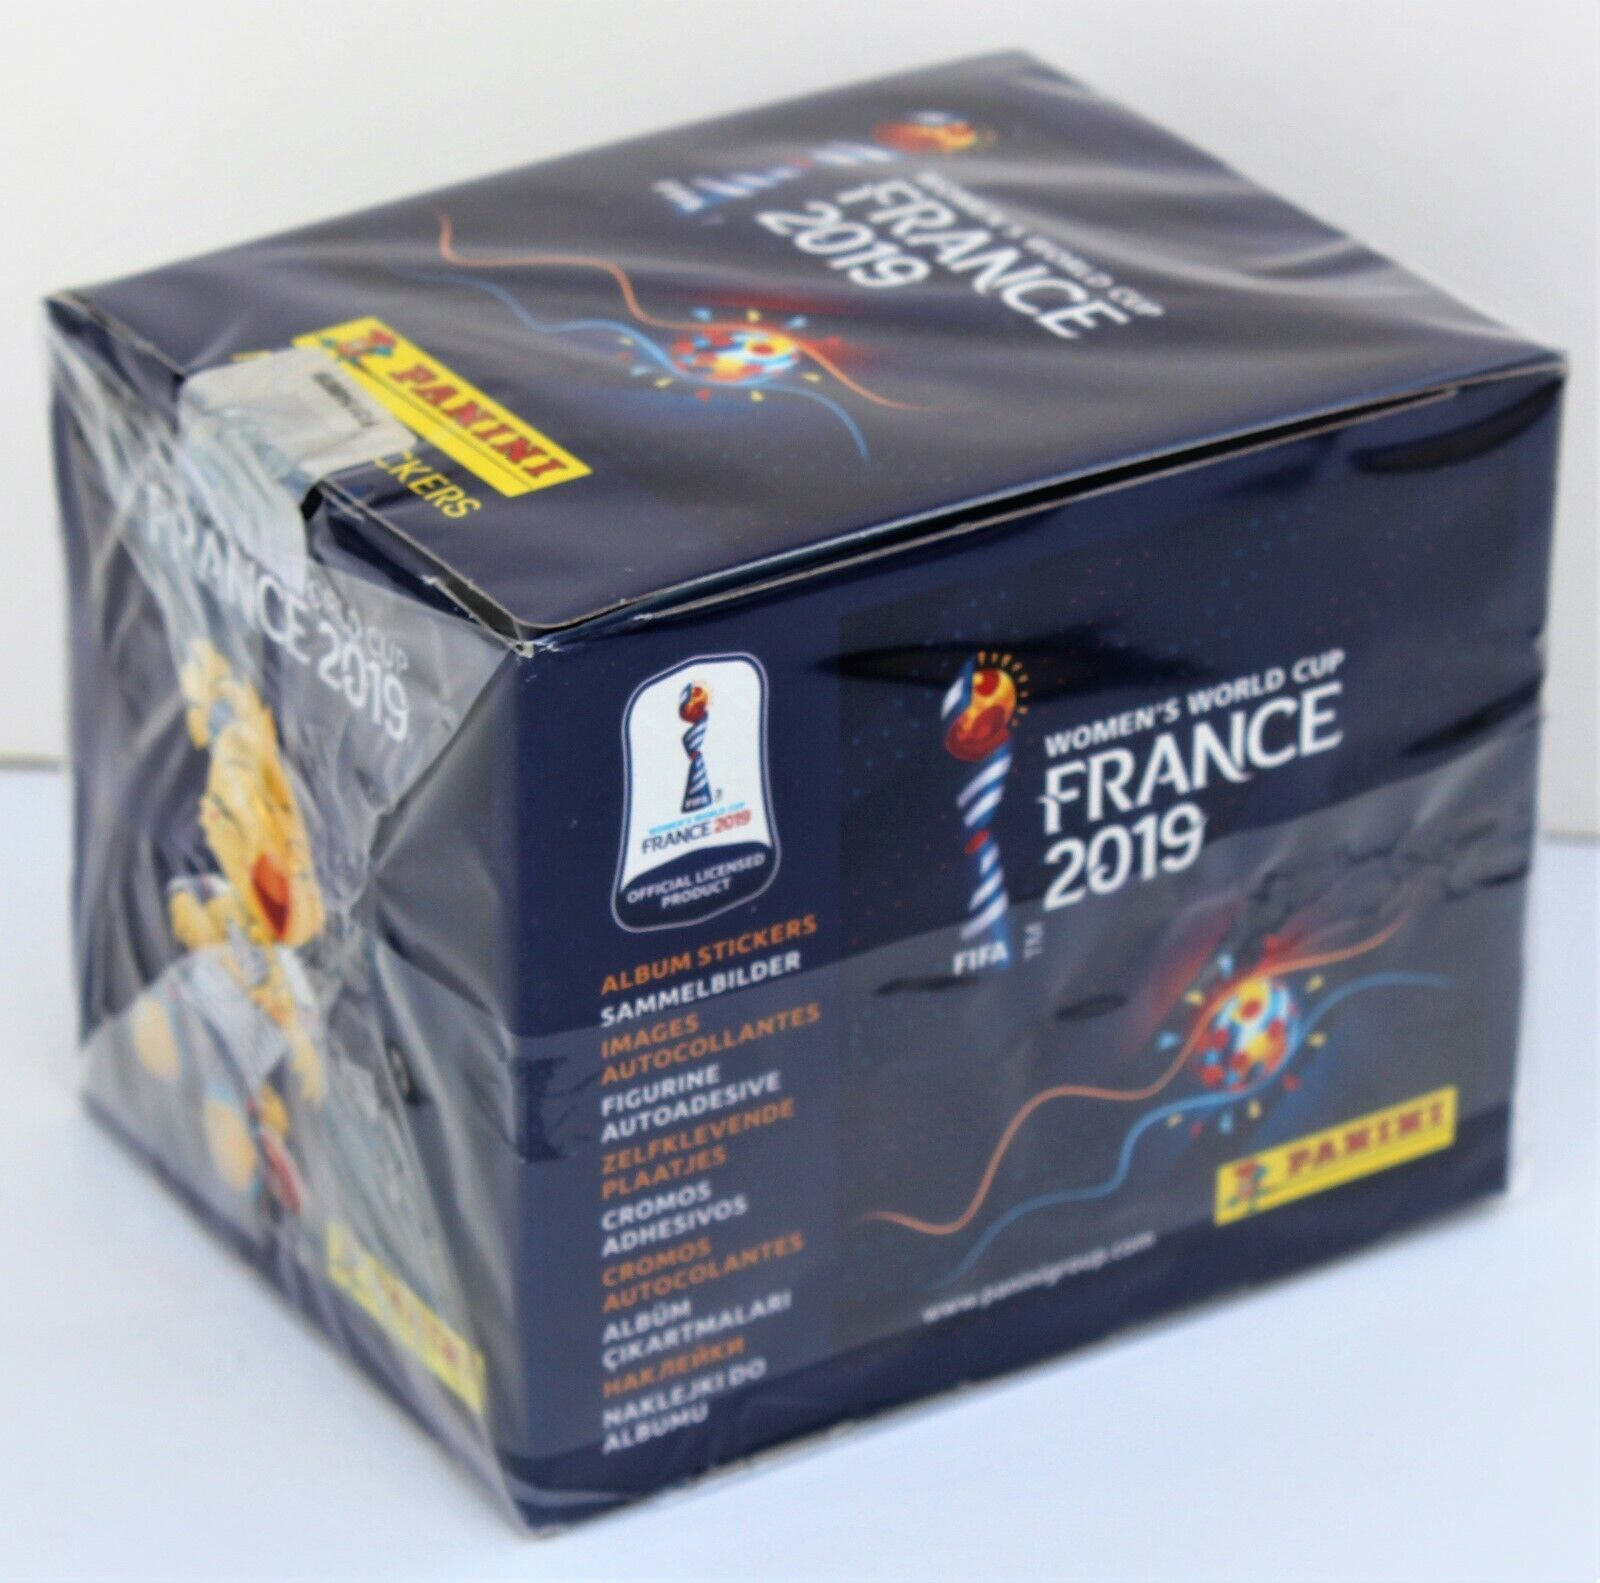 Panini Women´s World Cup 2019 France - sealed box 50 packs of stickers